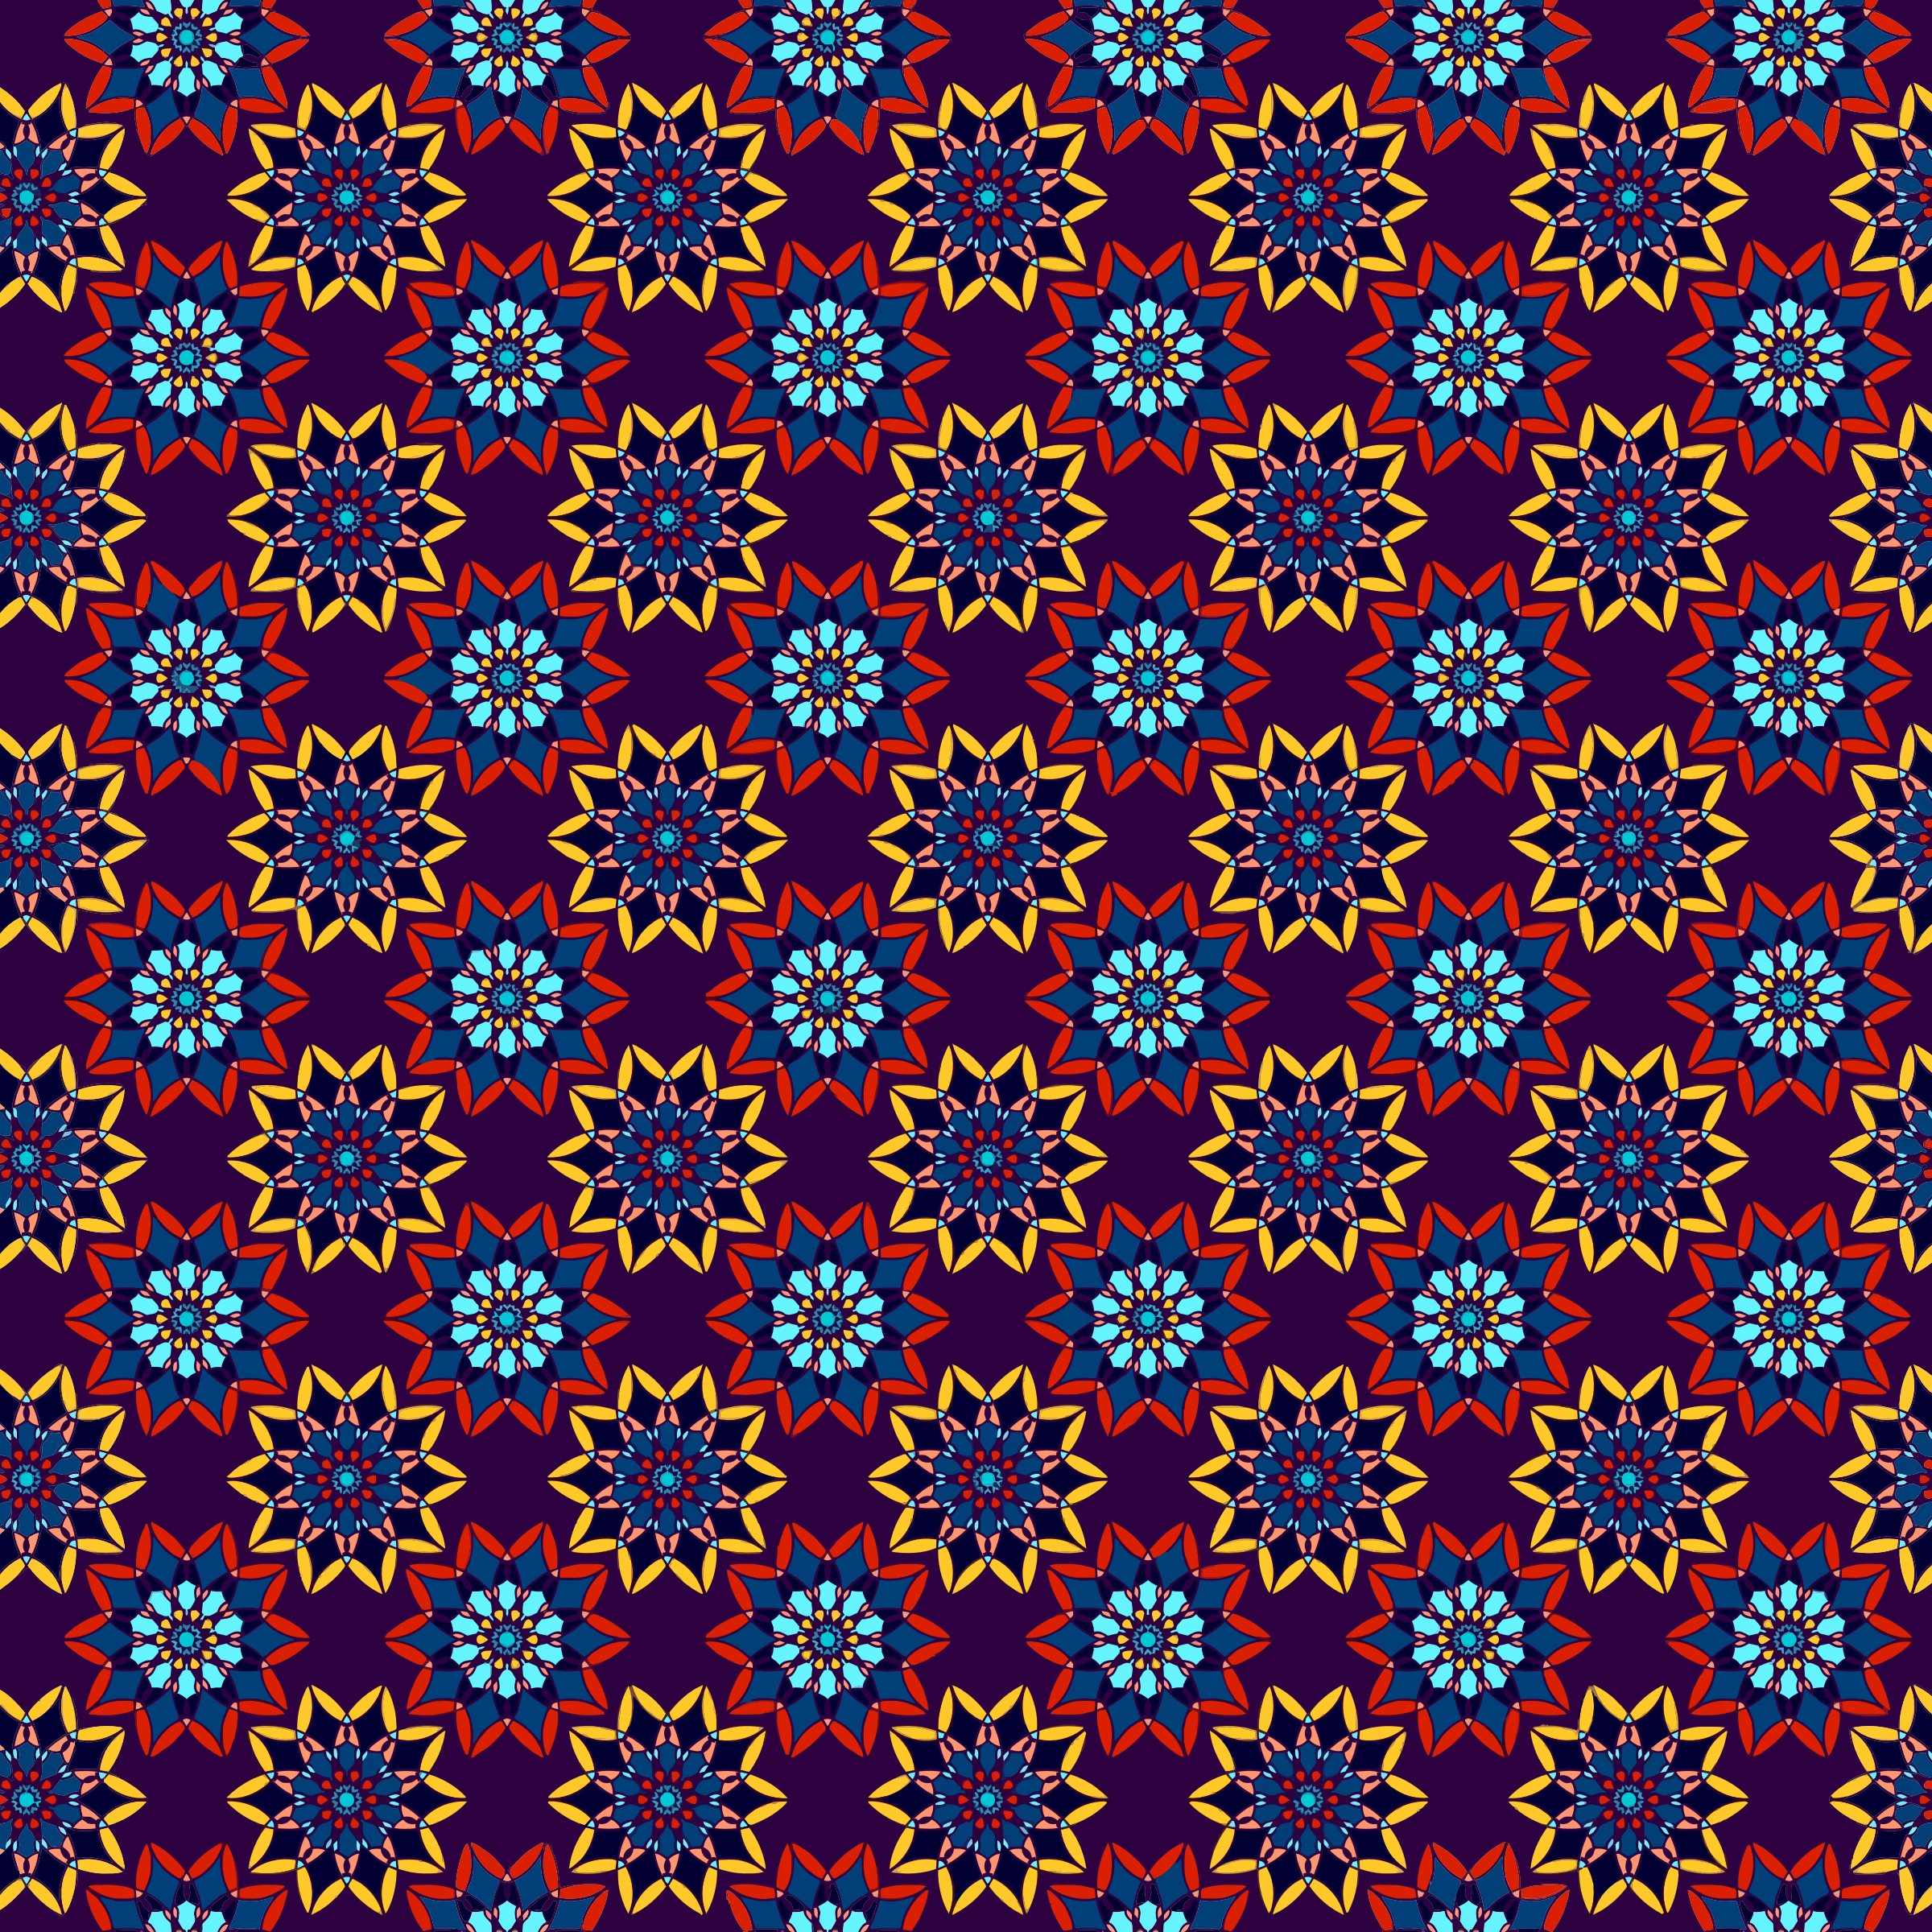 Floral Seamless Pattern 4 by GDJ